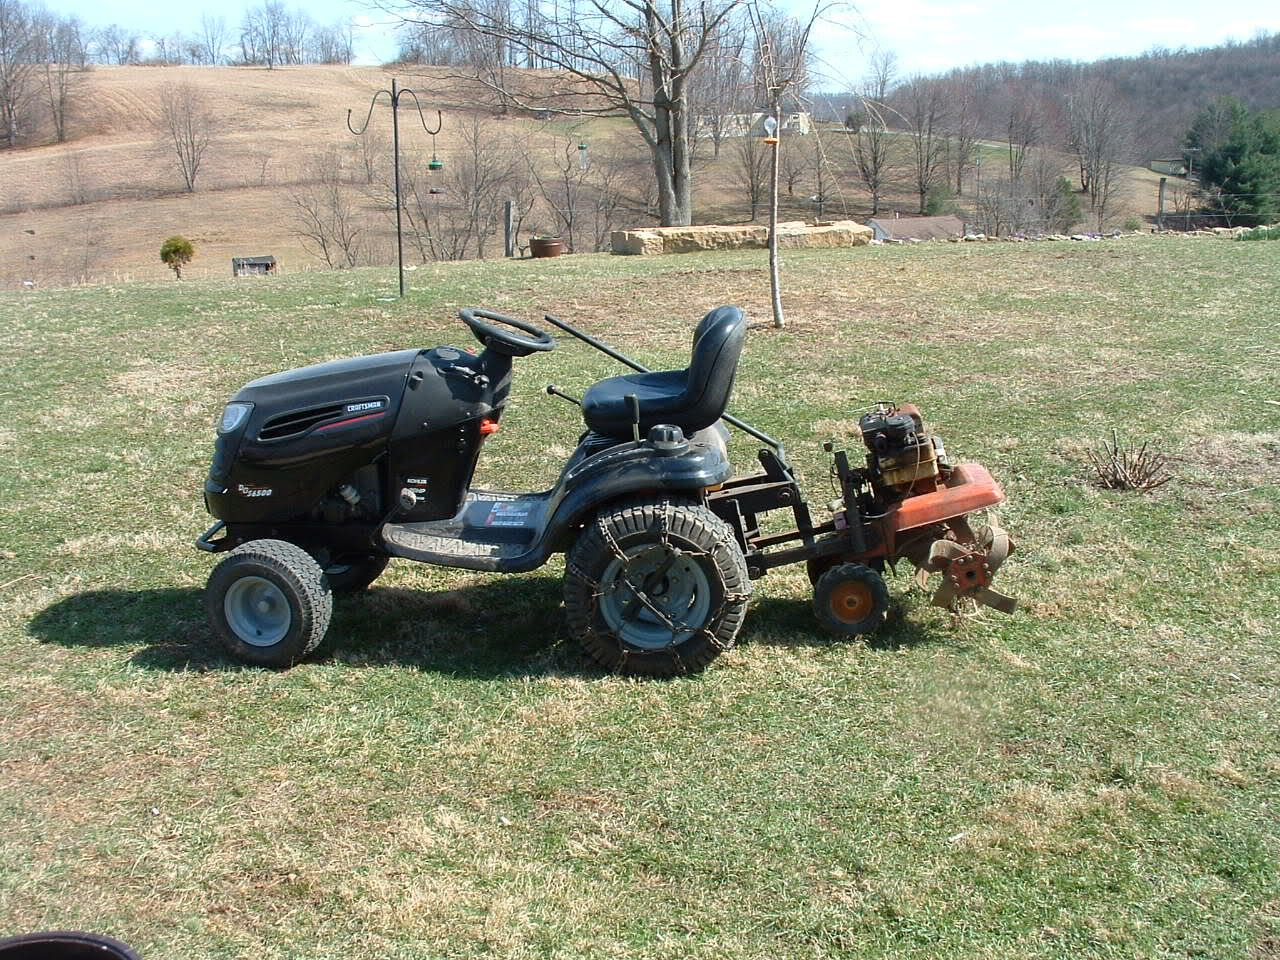 Captivating Tractor · Homemade Lawn Garden Tractor Attachments Tillers